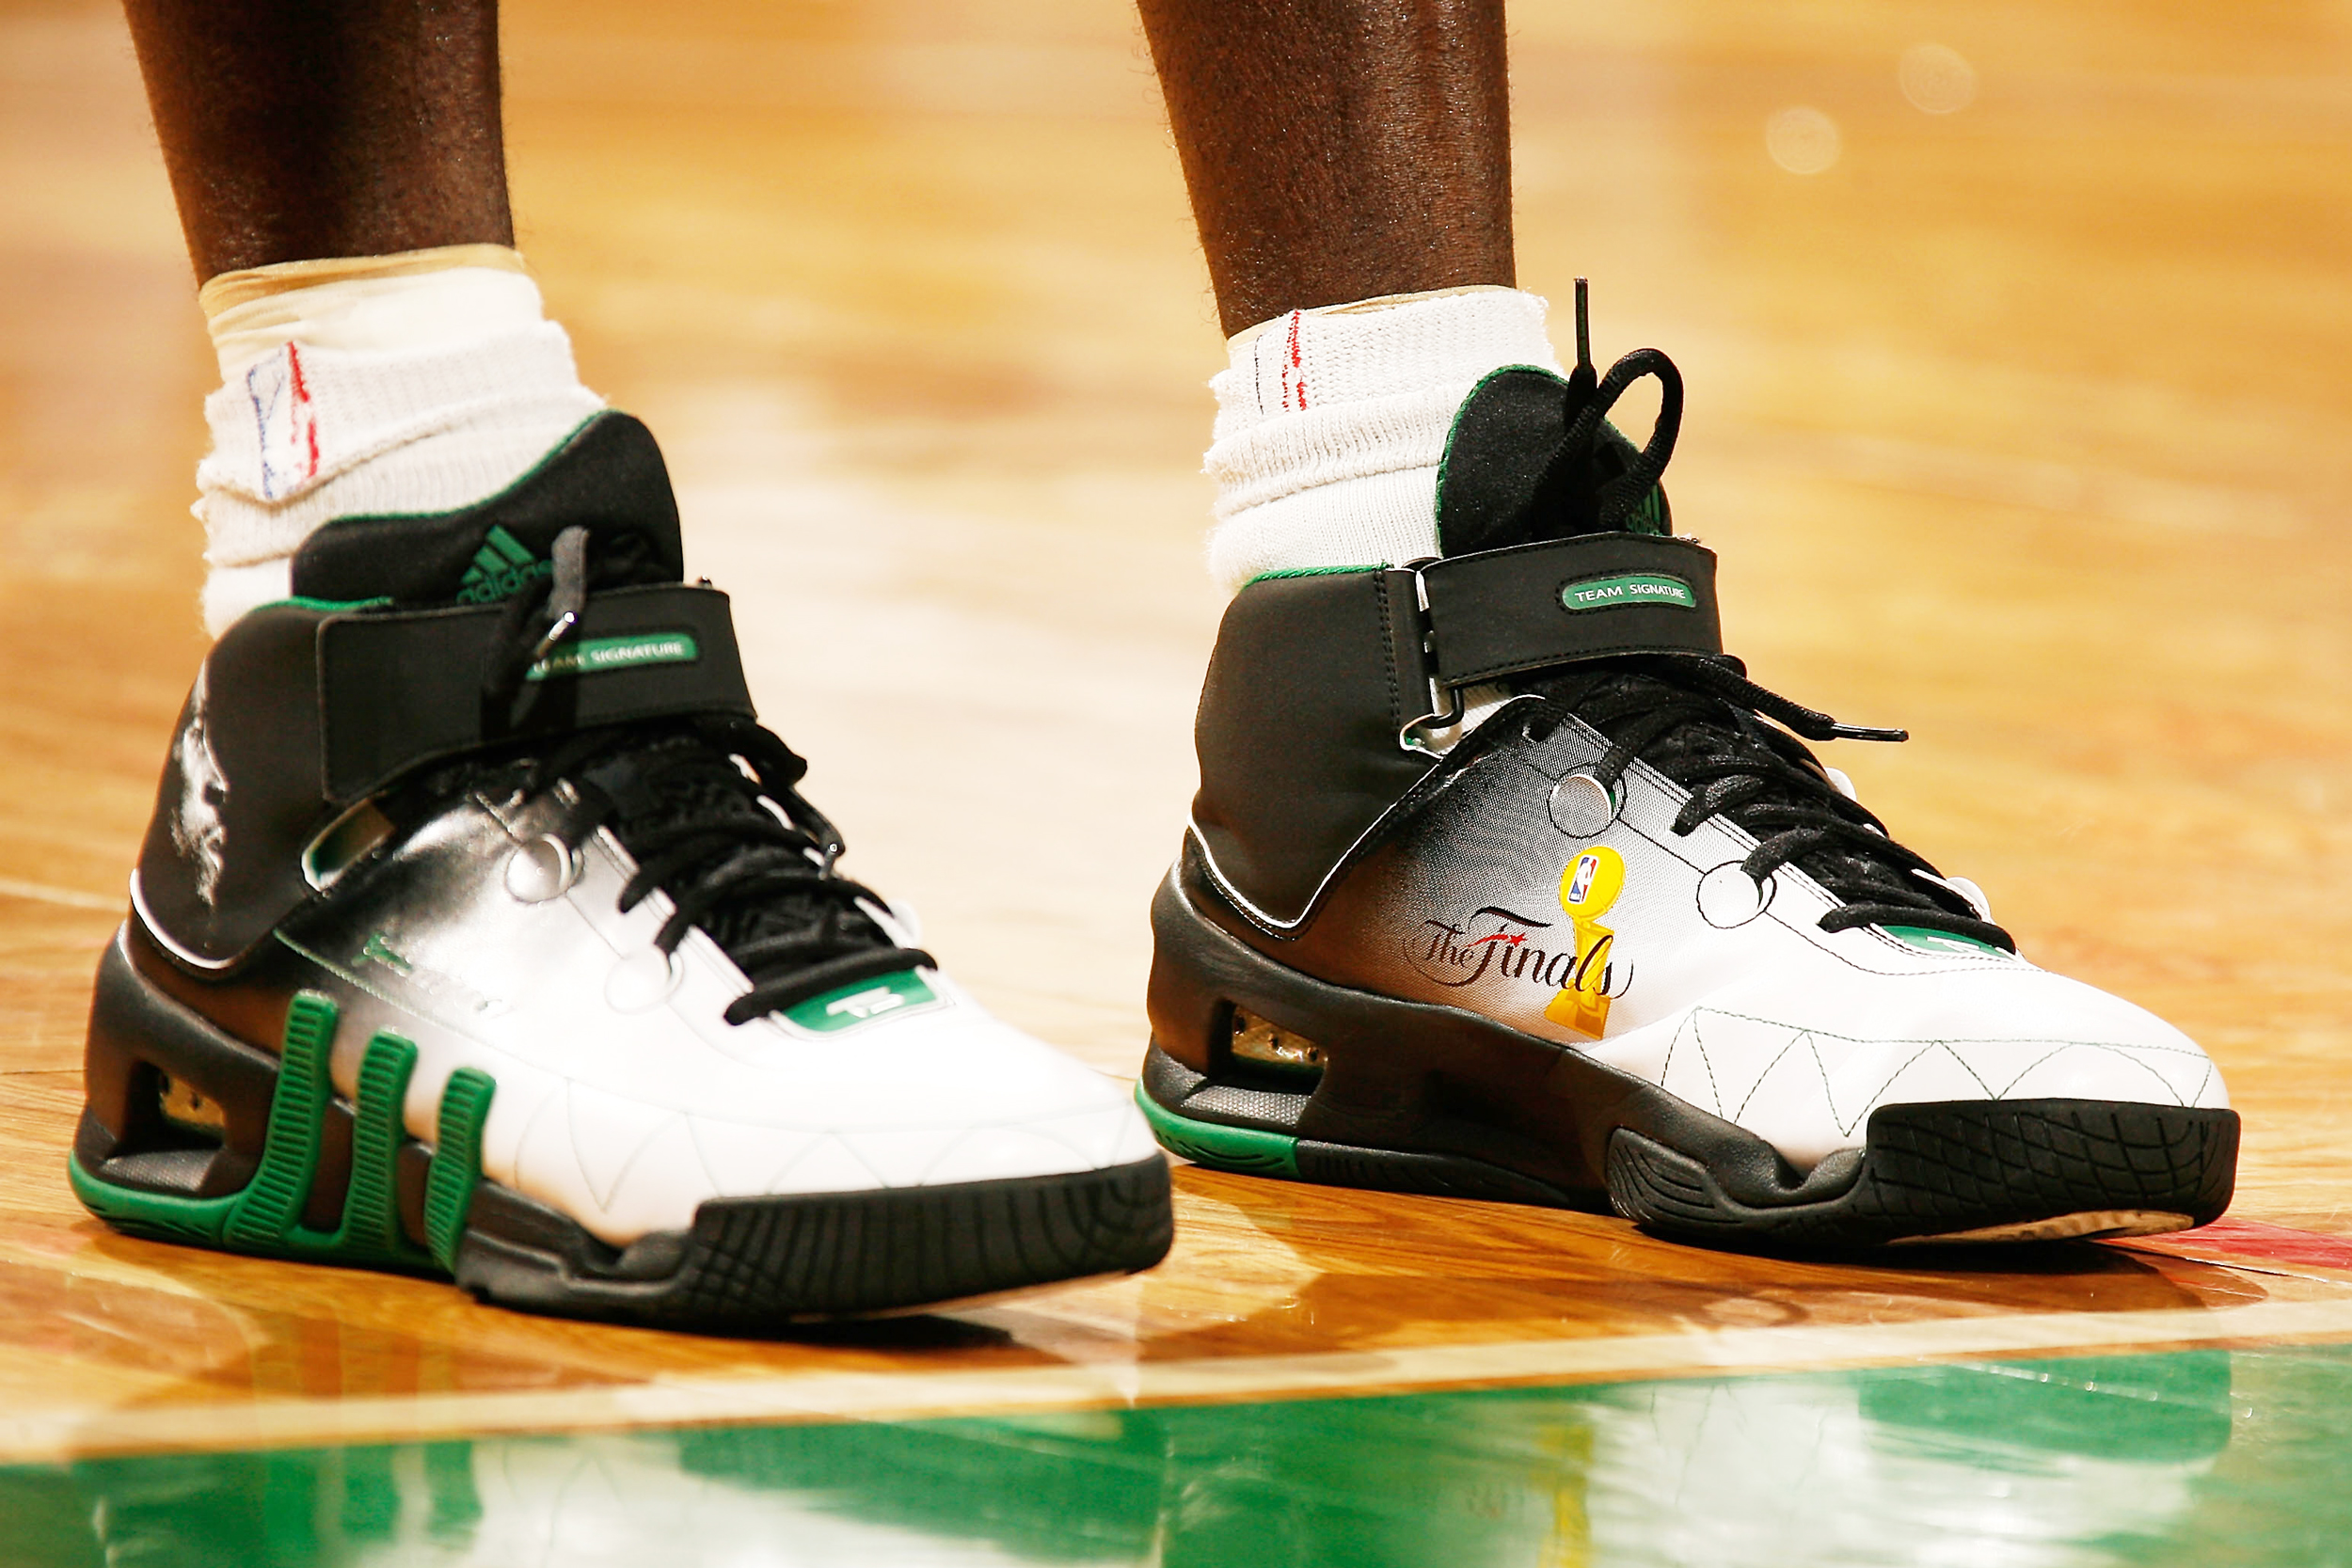 66144c873b95 Kevin Garnett of the Boston Celtics wears a pair of unique Adidas sneakers  in honor of the 2008 NBA Finals against the Los Angeles Lakers on June 17